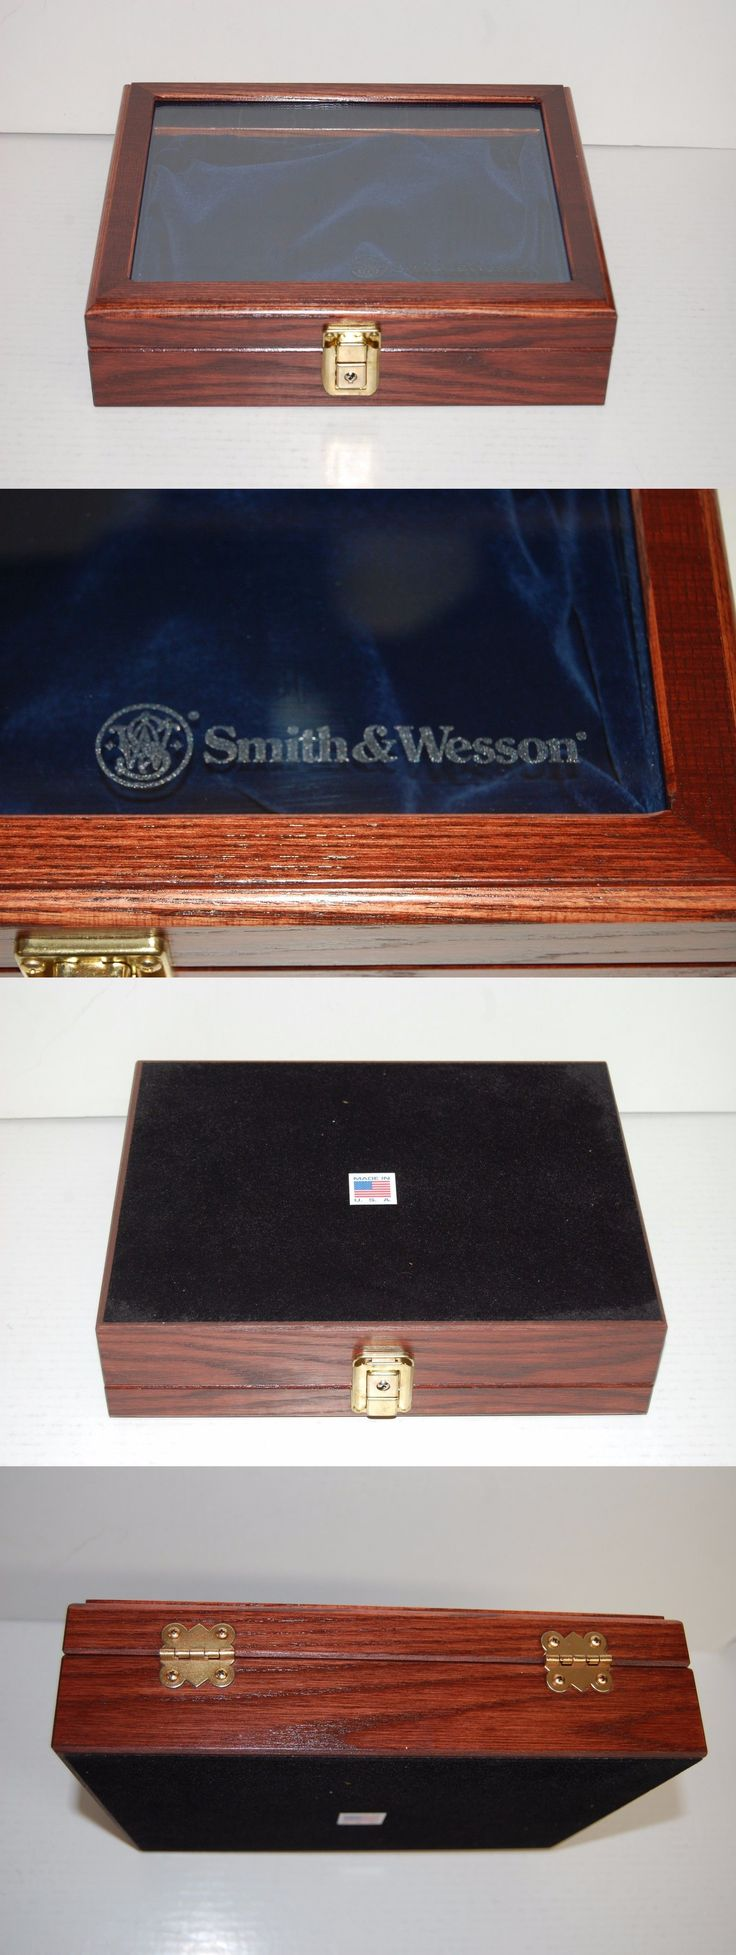 Other Hunting Gun Storage 159038: Smith And Wesson Small Glass Top Presentation Case Revolver Pistol Handgun N L K J -> BUY IT NOW ONLY: $99.75 on eBay!